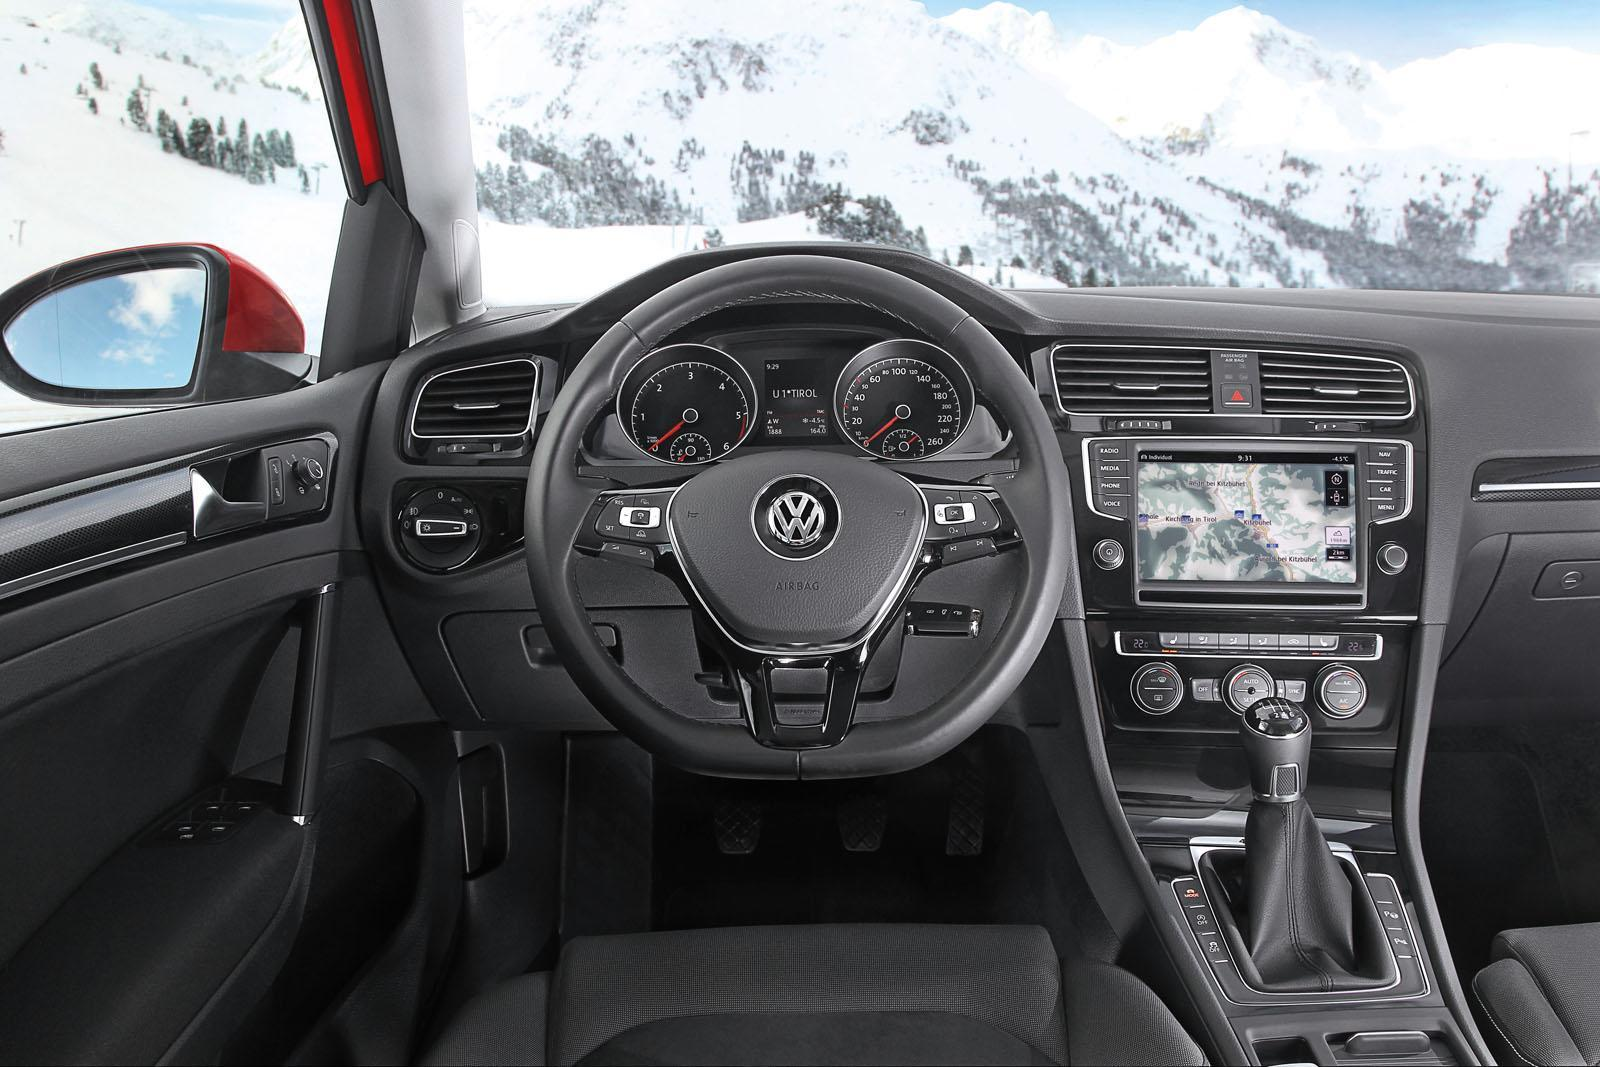 vw golf 7 4motion 2013 la transmission 4x4 en d tails